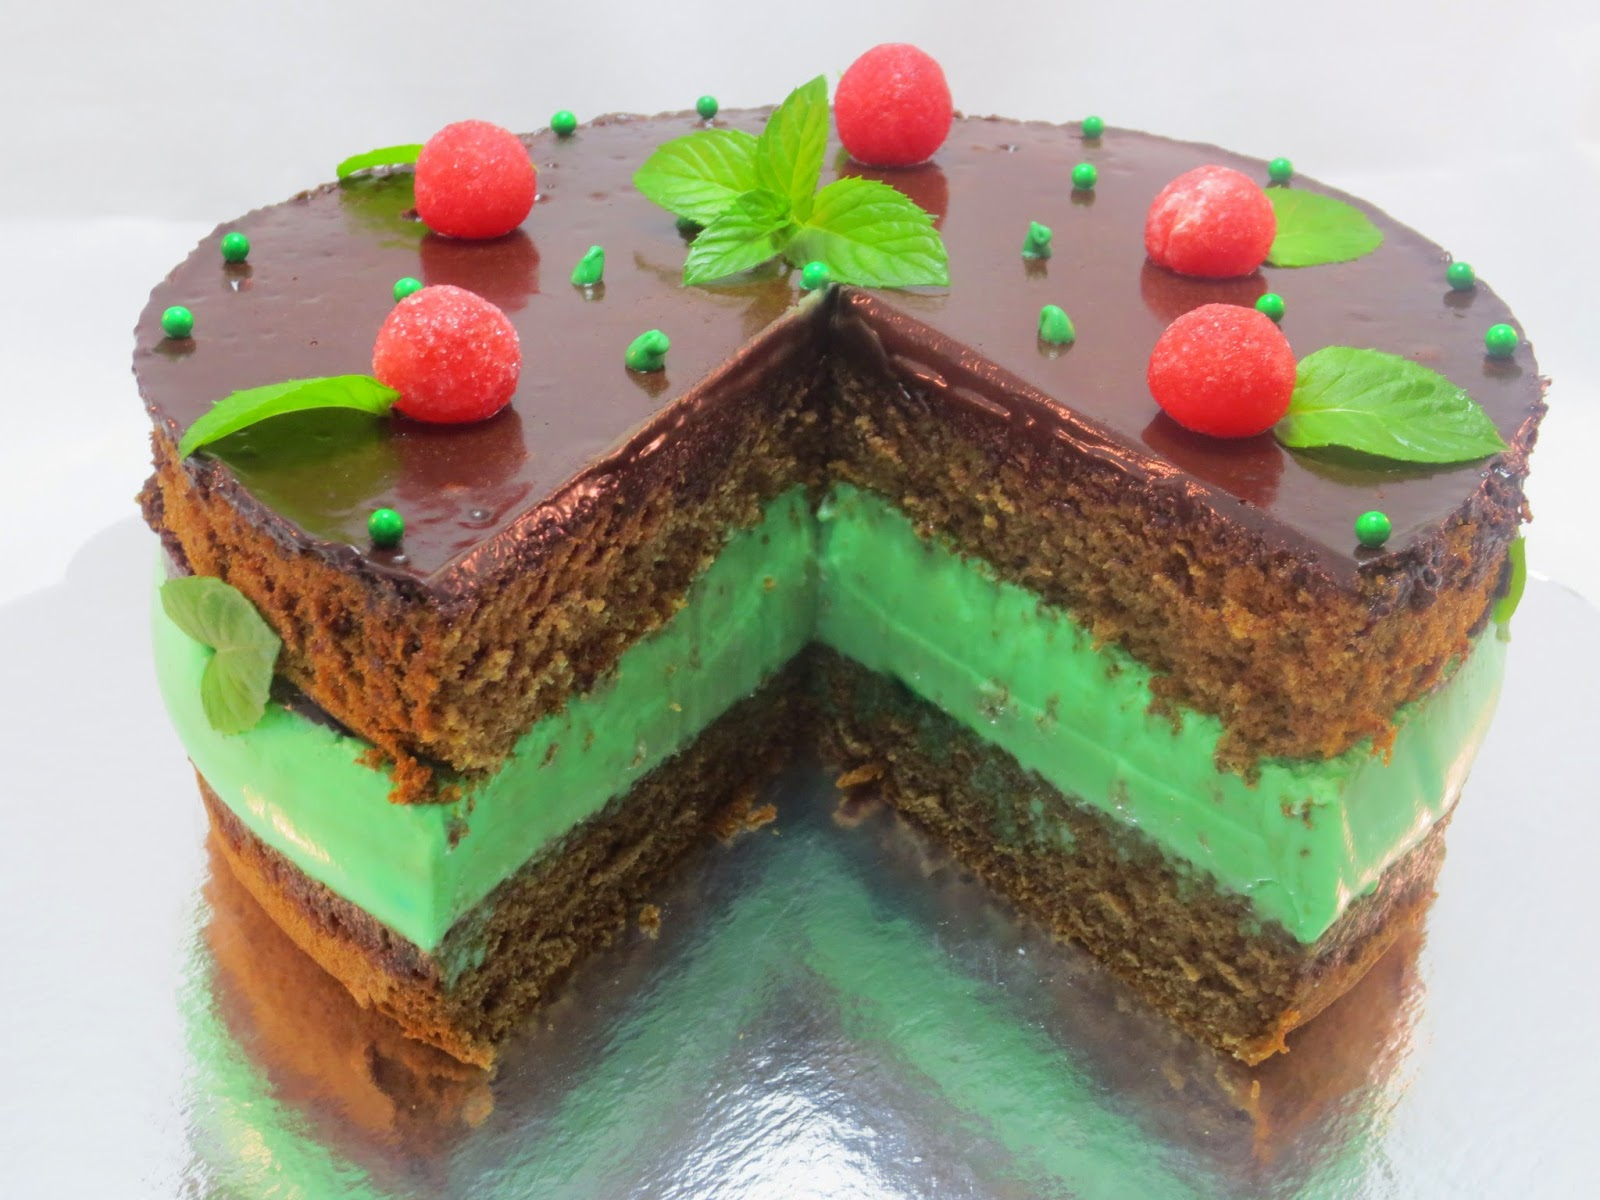 Tarta mousse de menta y chocolate Thermomix